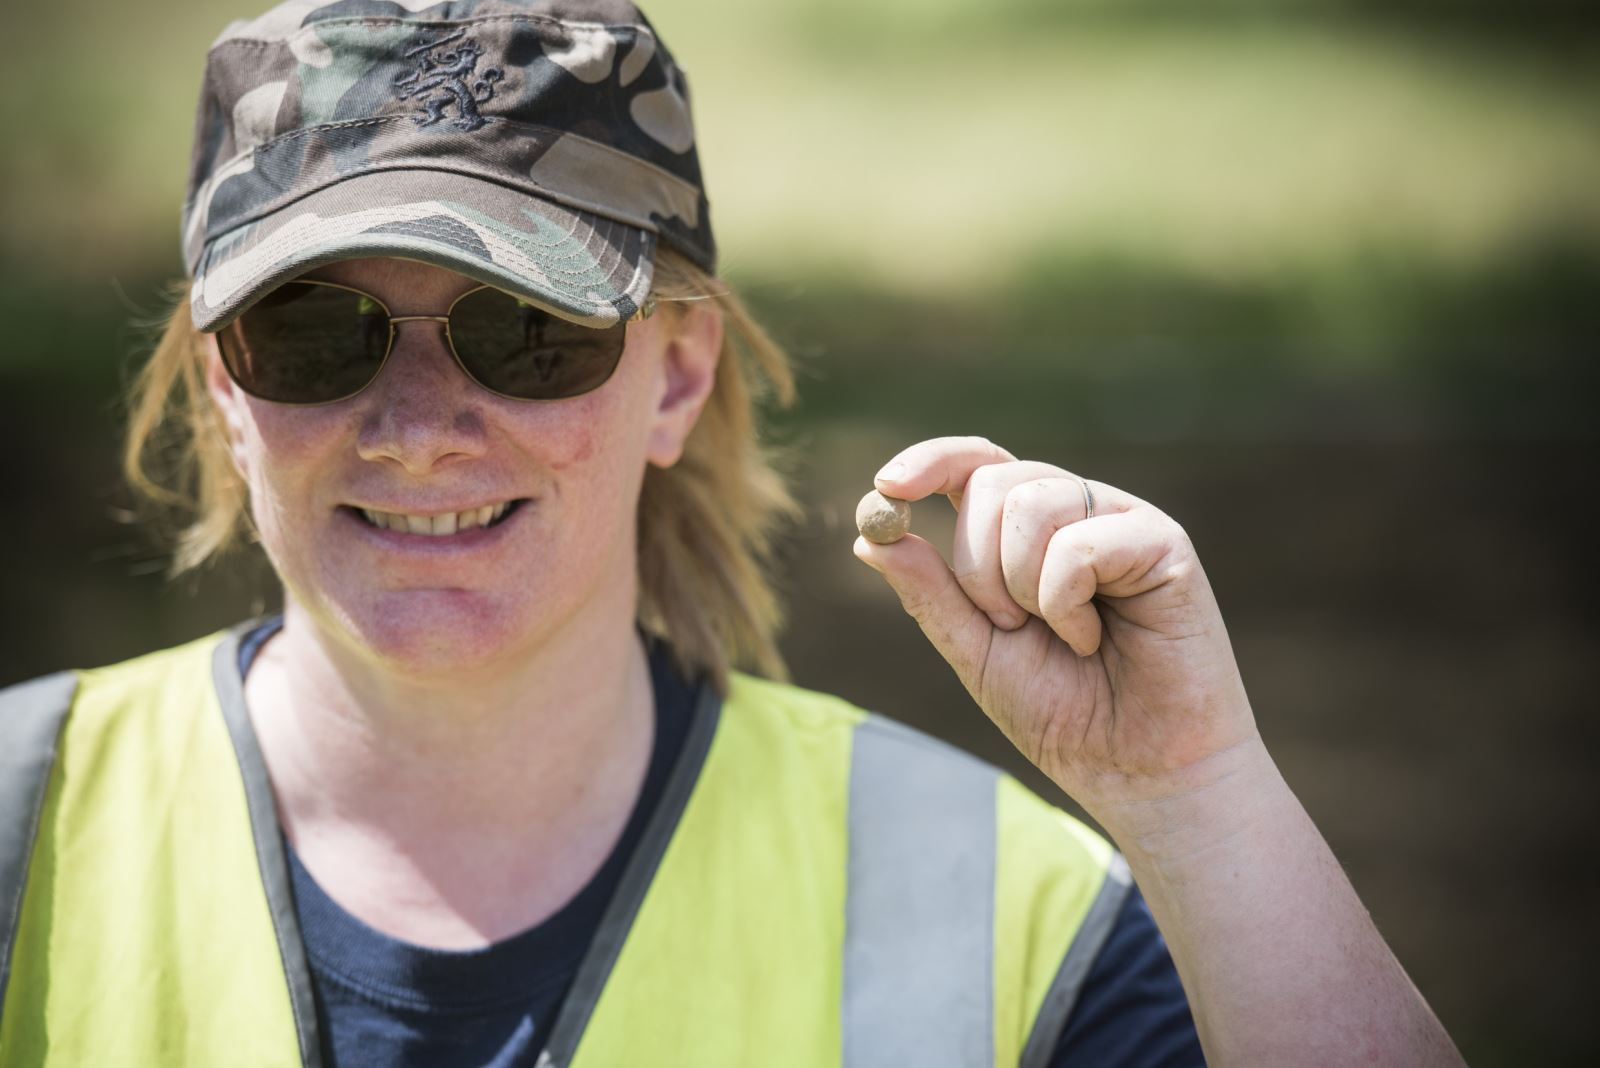 Waterloo Uncovered volunteer holds one of the musket balls found at Mont-Saint-Jean. Photo by Chris van Houts.